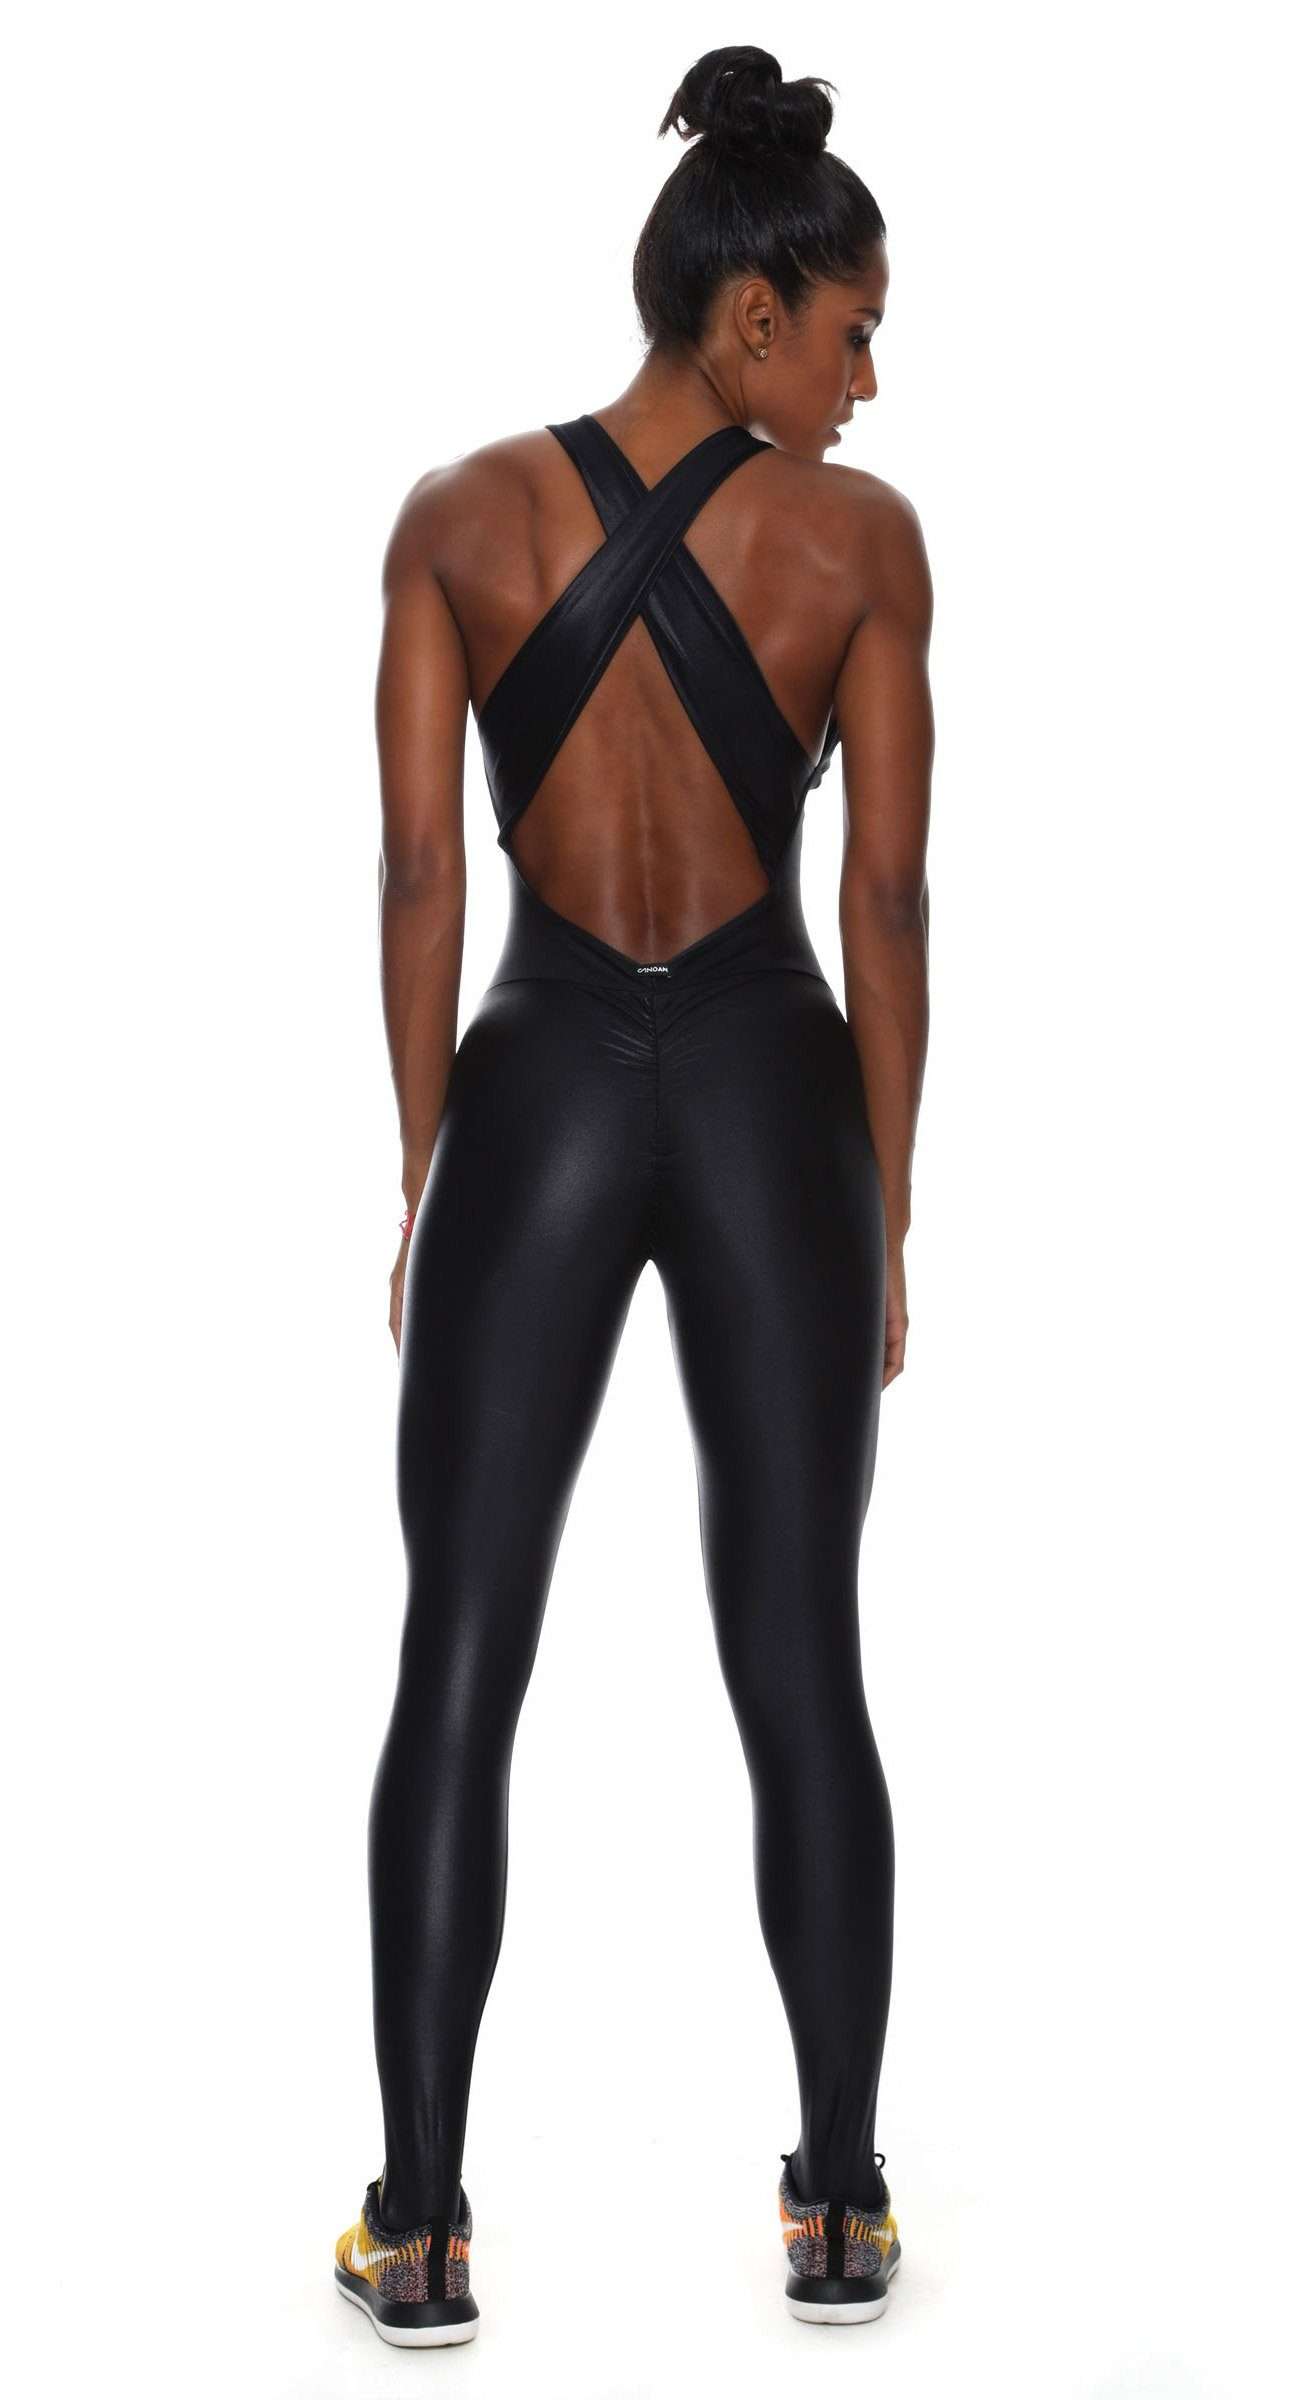 Brazilian Workout Bodysuit - Scrunch Booty Lift Cire Black